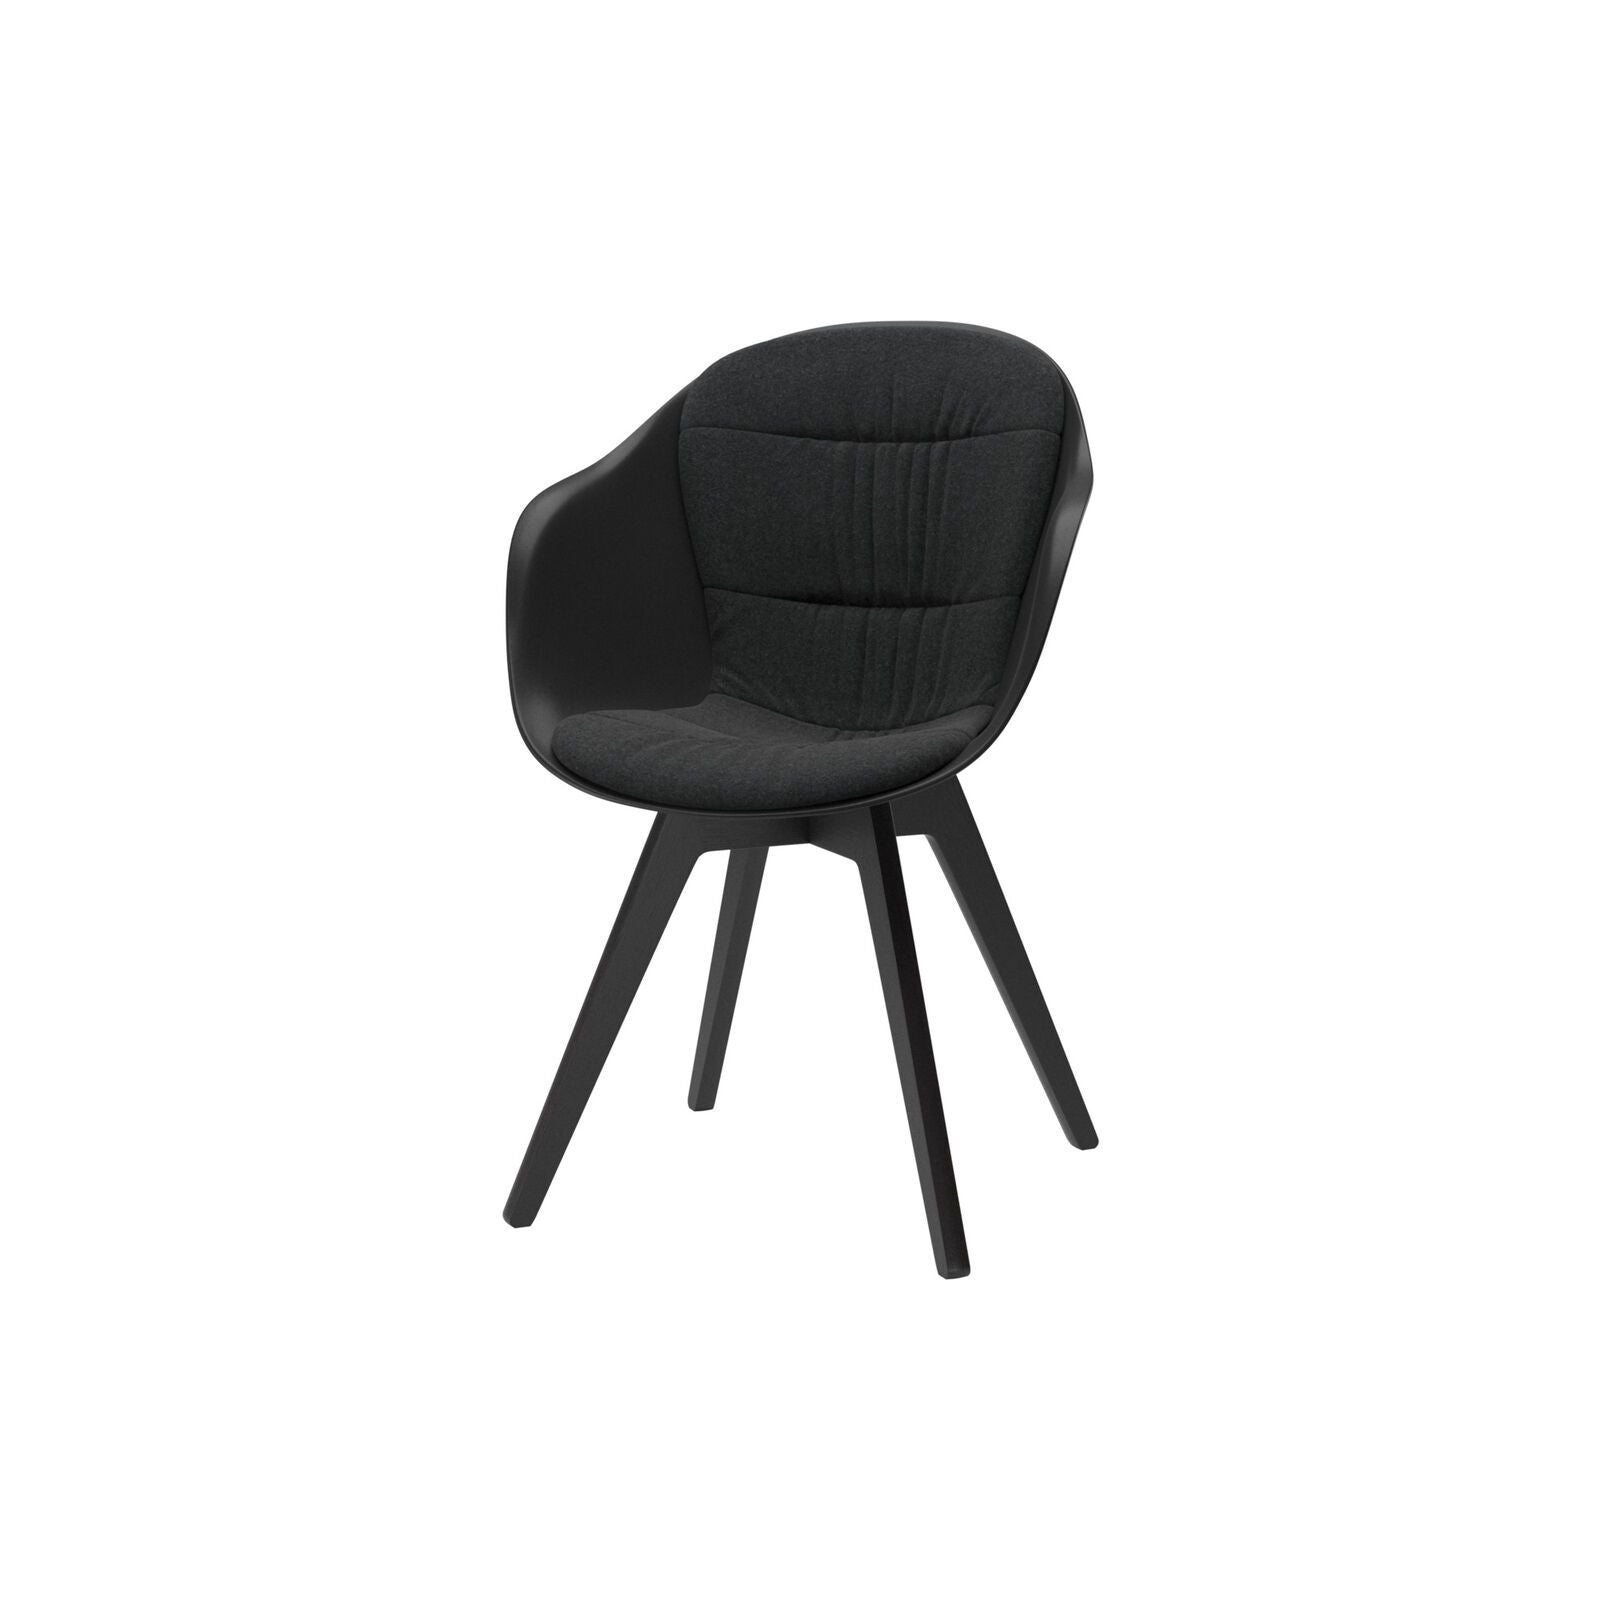 Adelaide Chair - Dark Gray Lux